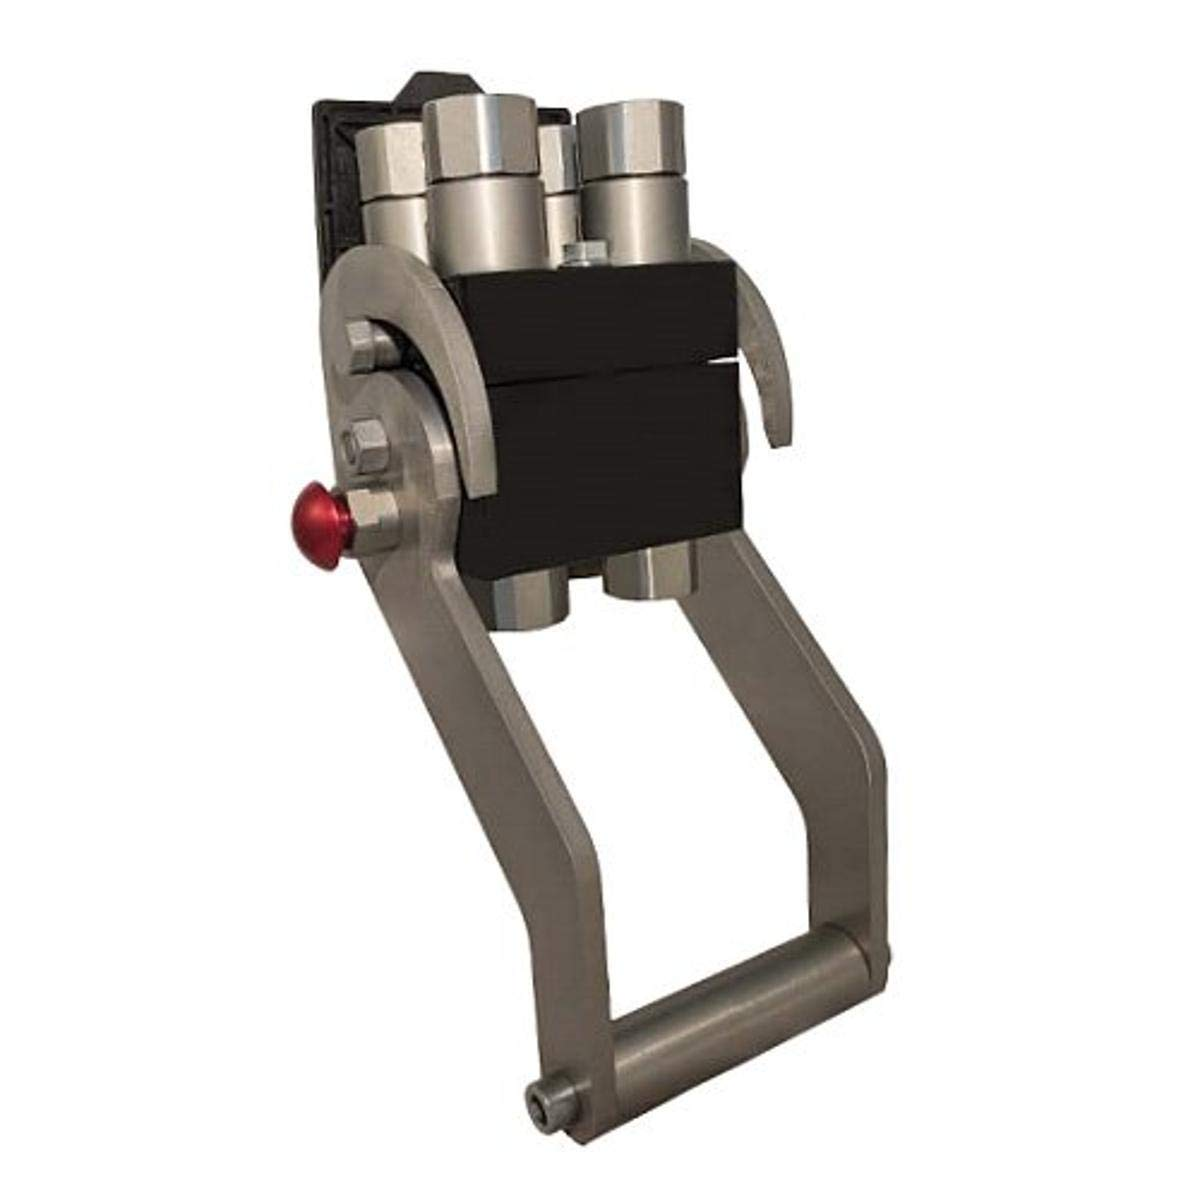 Holmbury MP12-F-08S Fixed Plate Coupler, 1/2